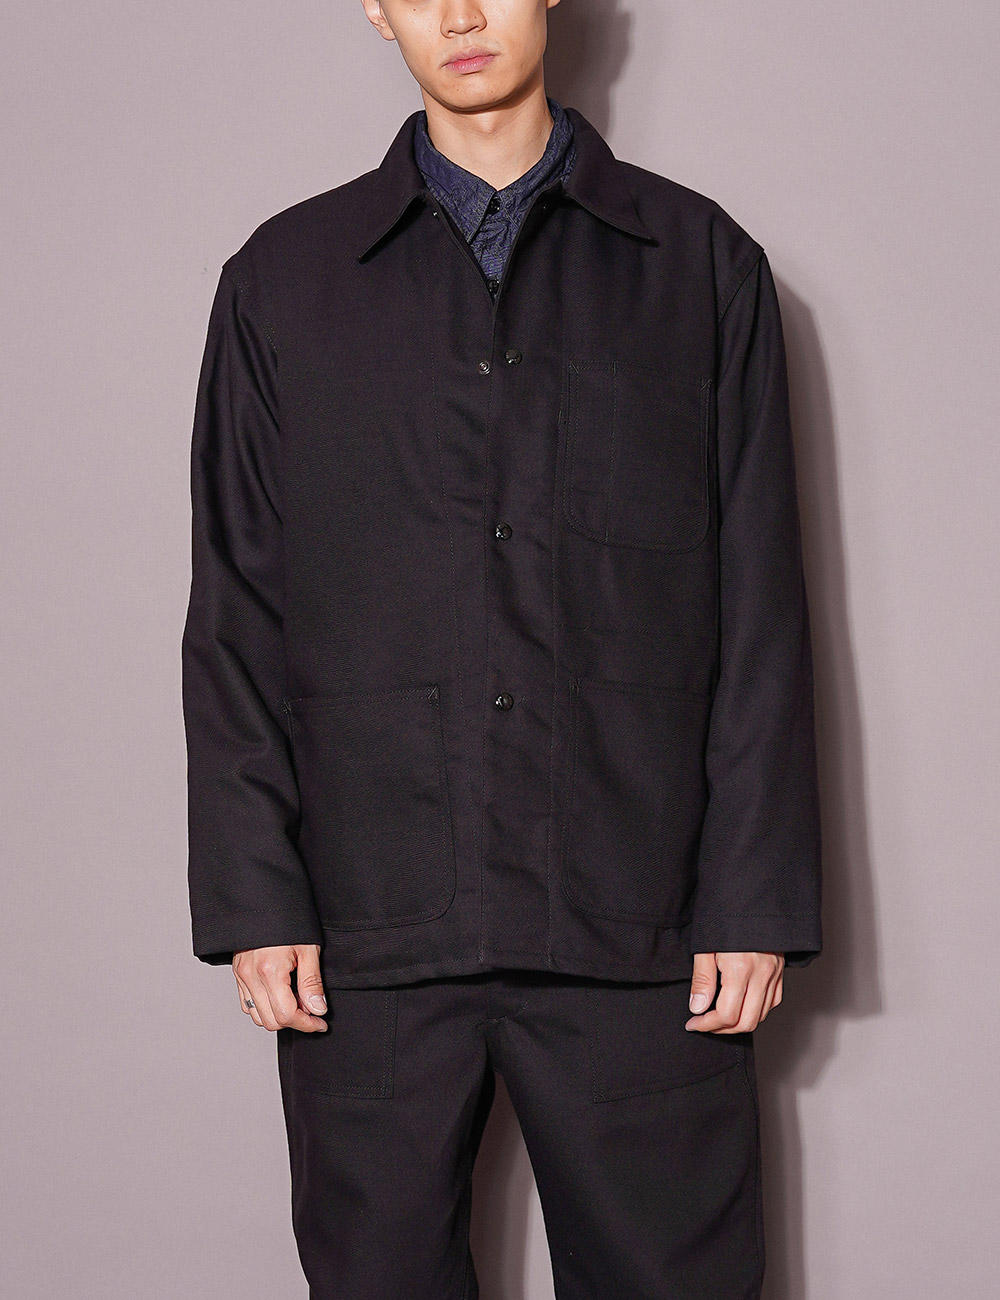 Engineered Garments WORKDAY : UTILITY JACKET (BLACK)